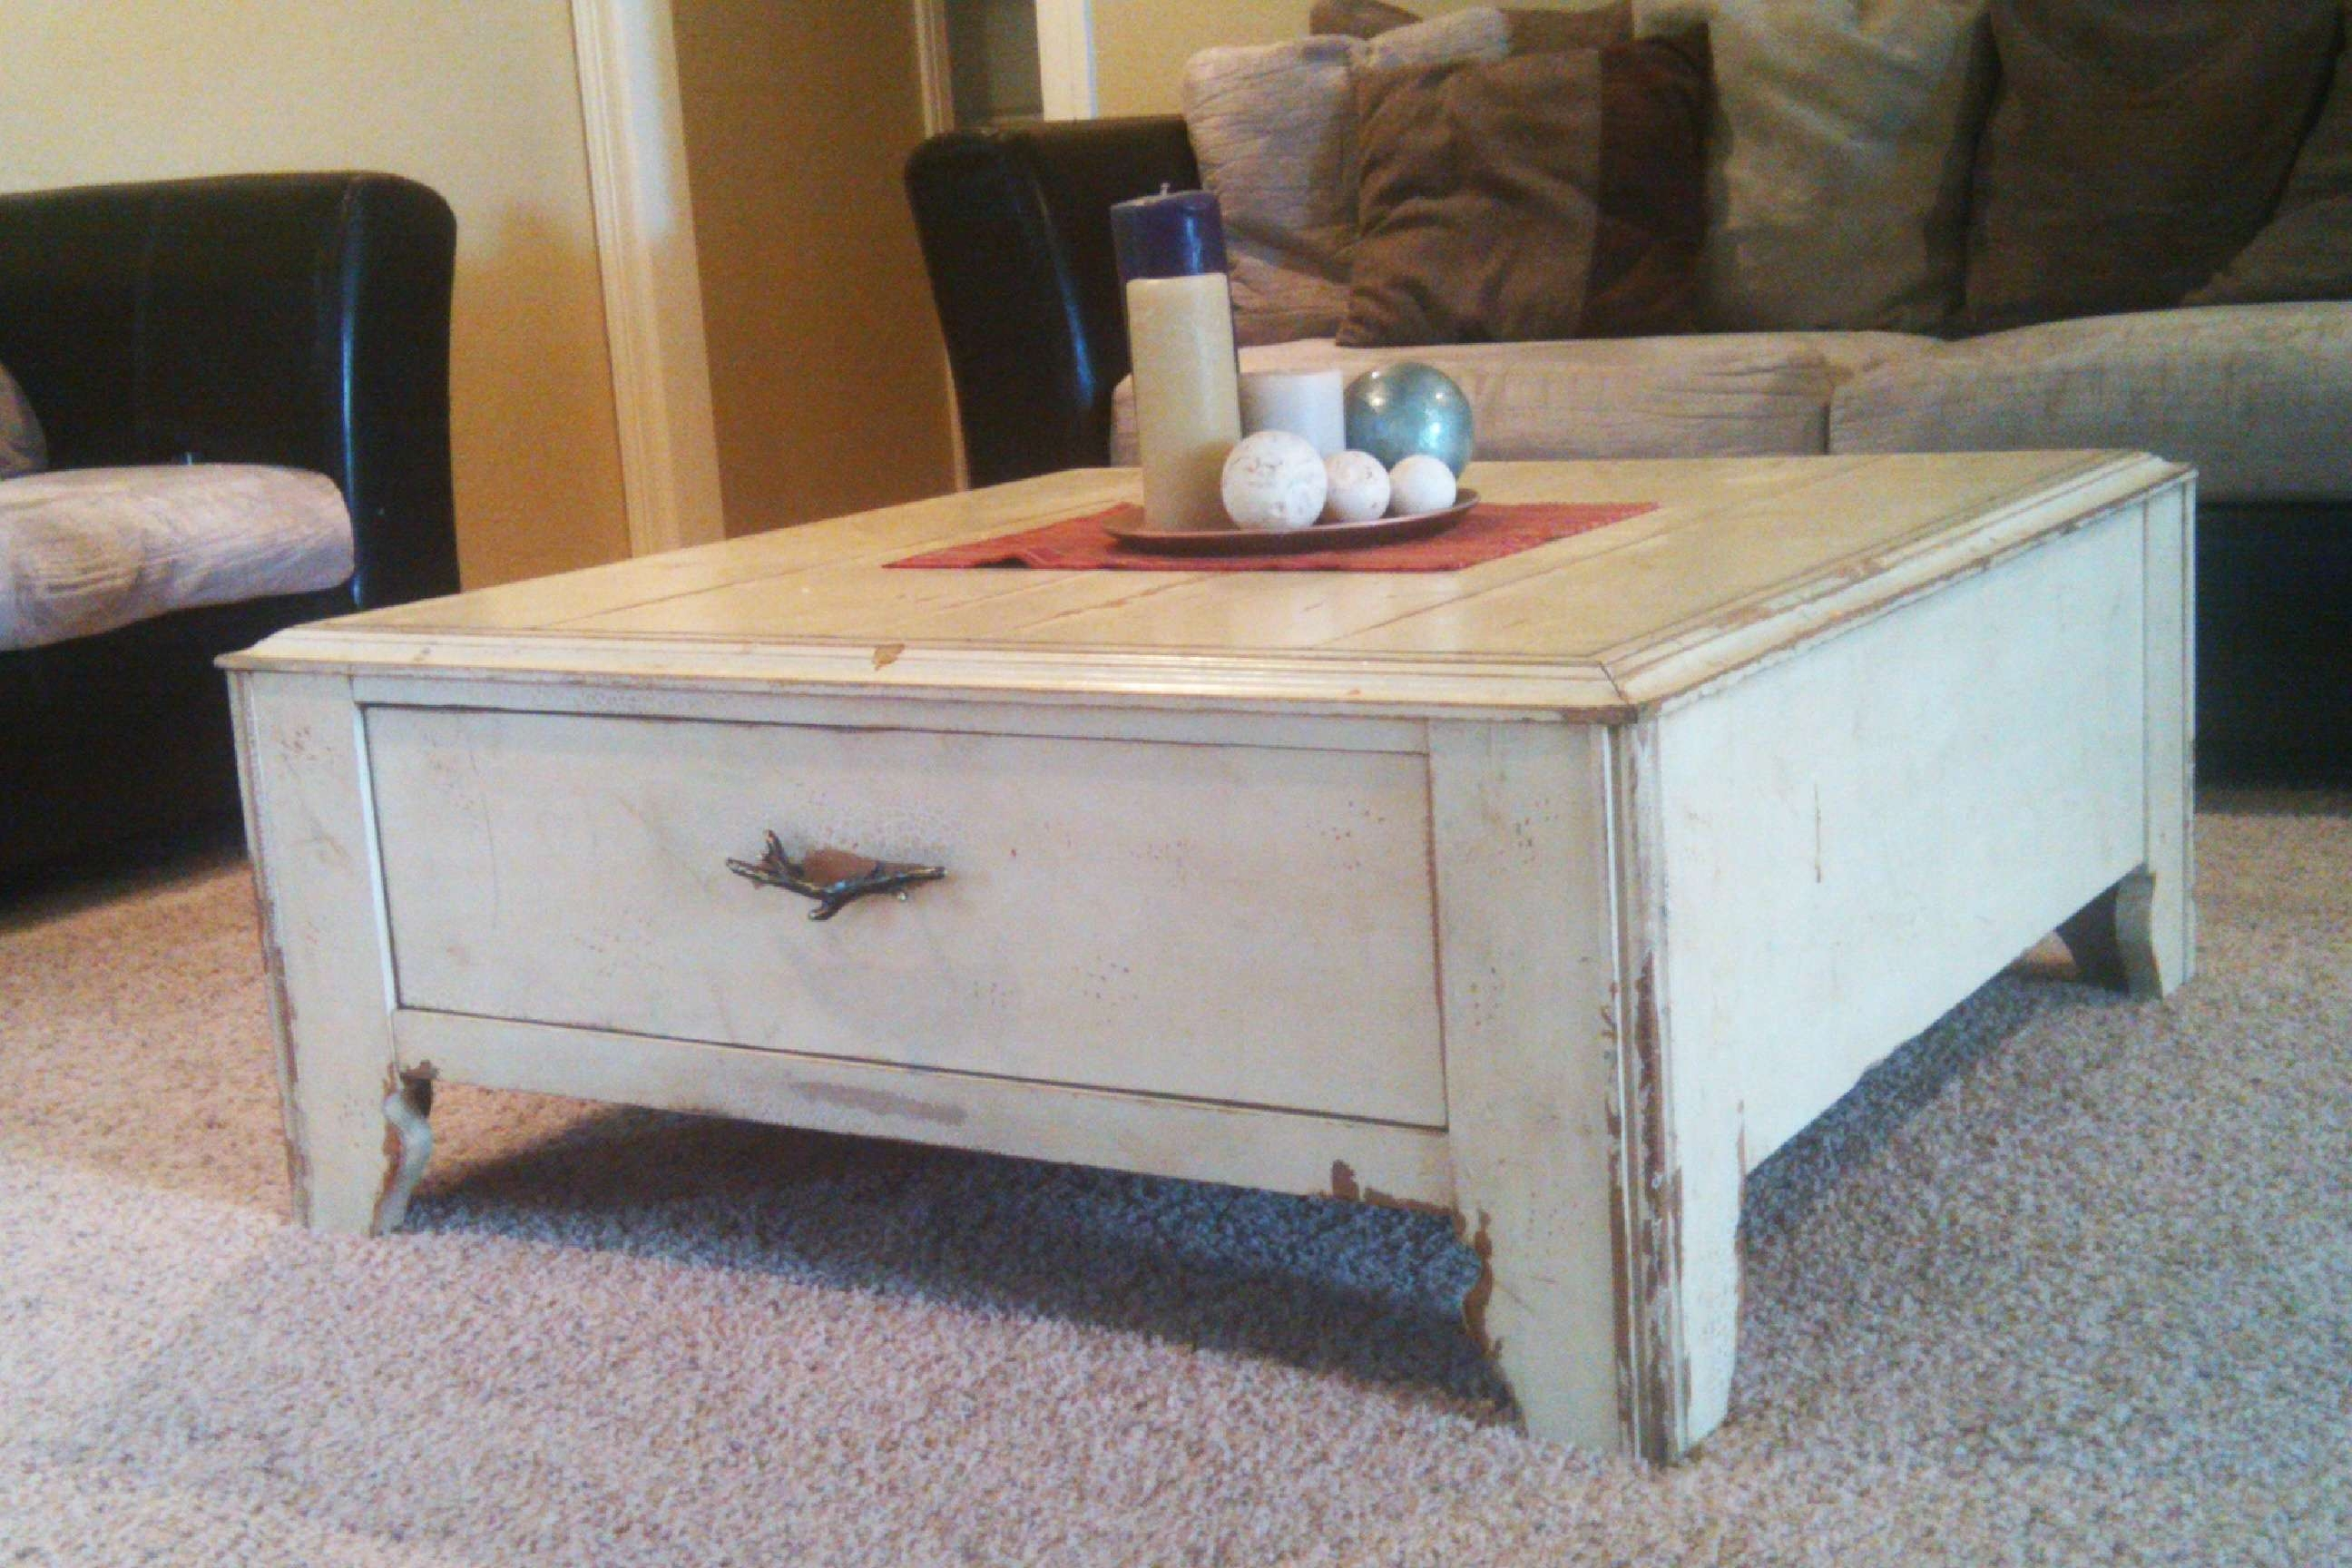 Current Rustic Square Coffee Table With Storage With Popular Rustic Oak Square Coffee Table Design Rustic Square Coffee (View 9 of 20)